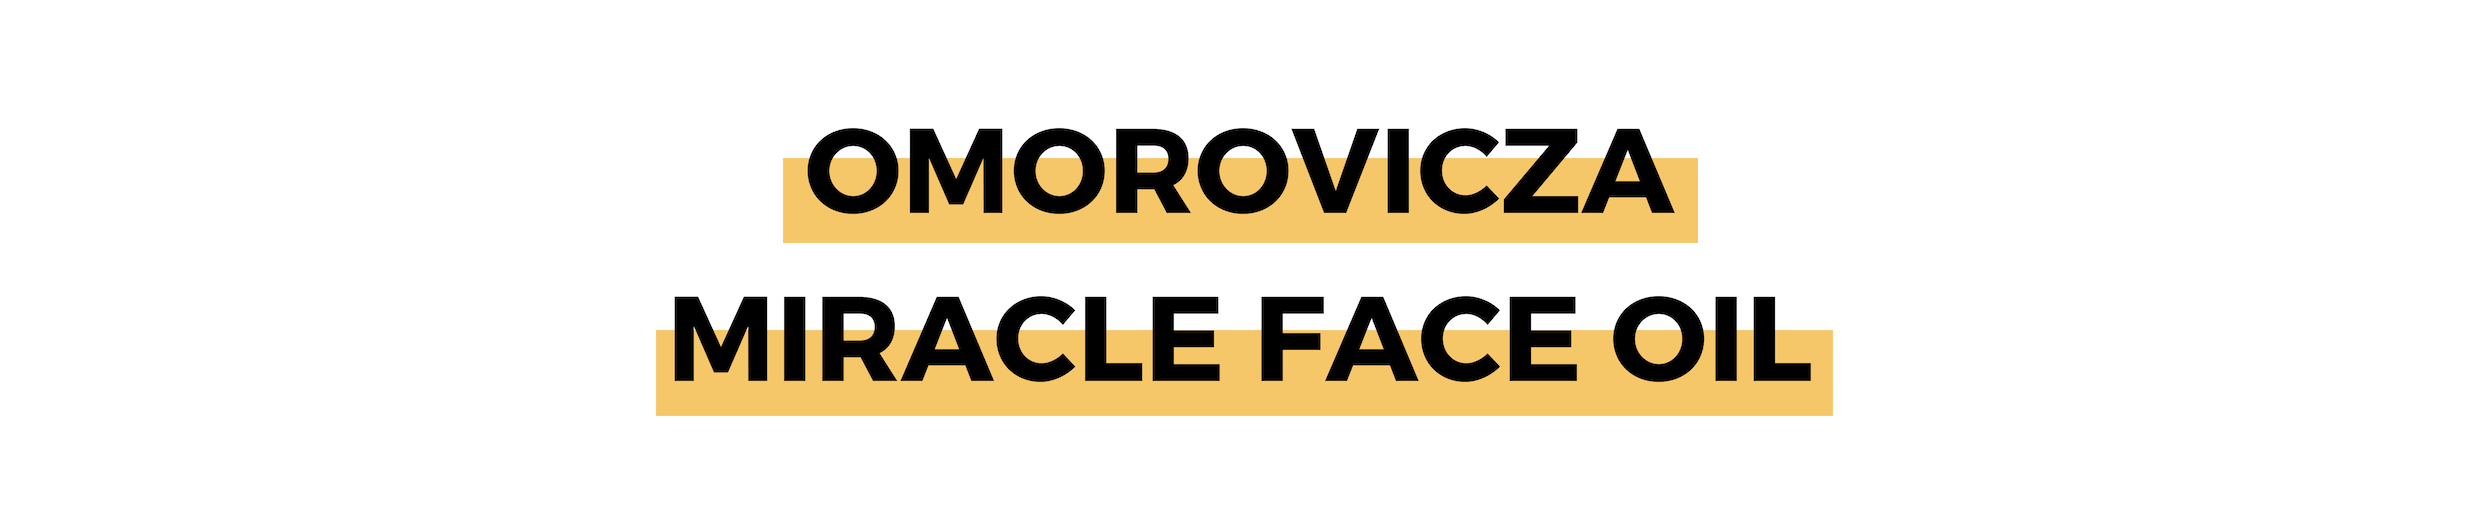 OMOROVICZA MIRACLE FACE OIL.png